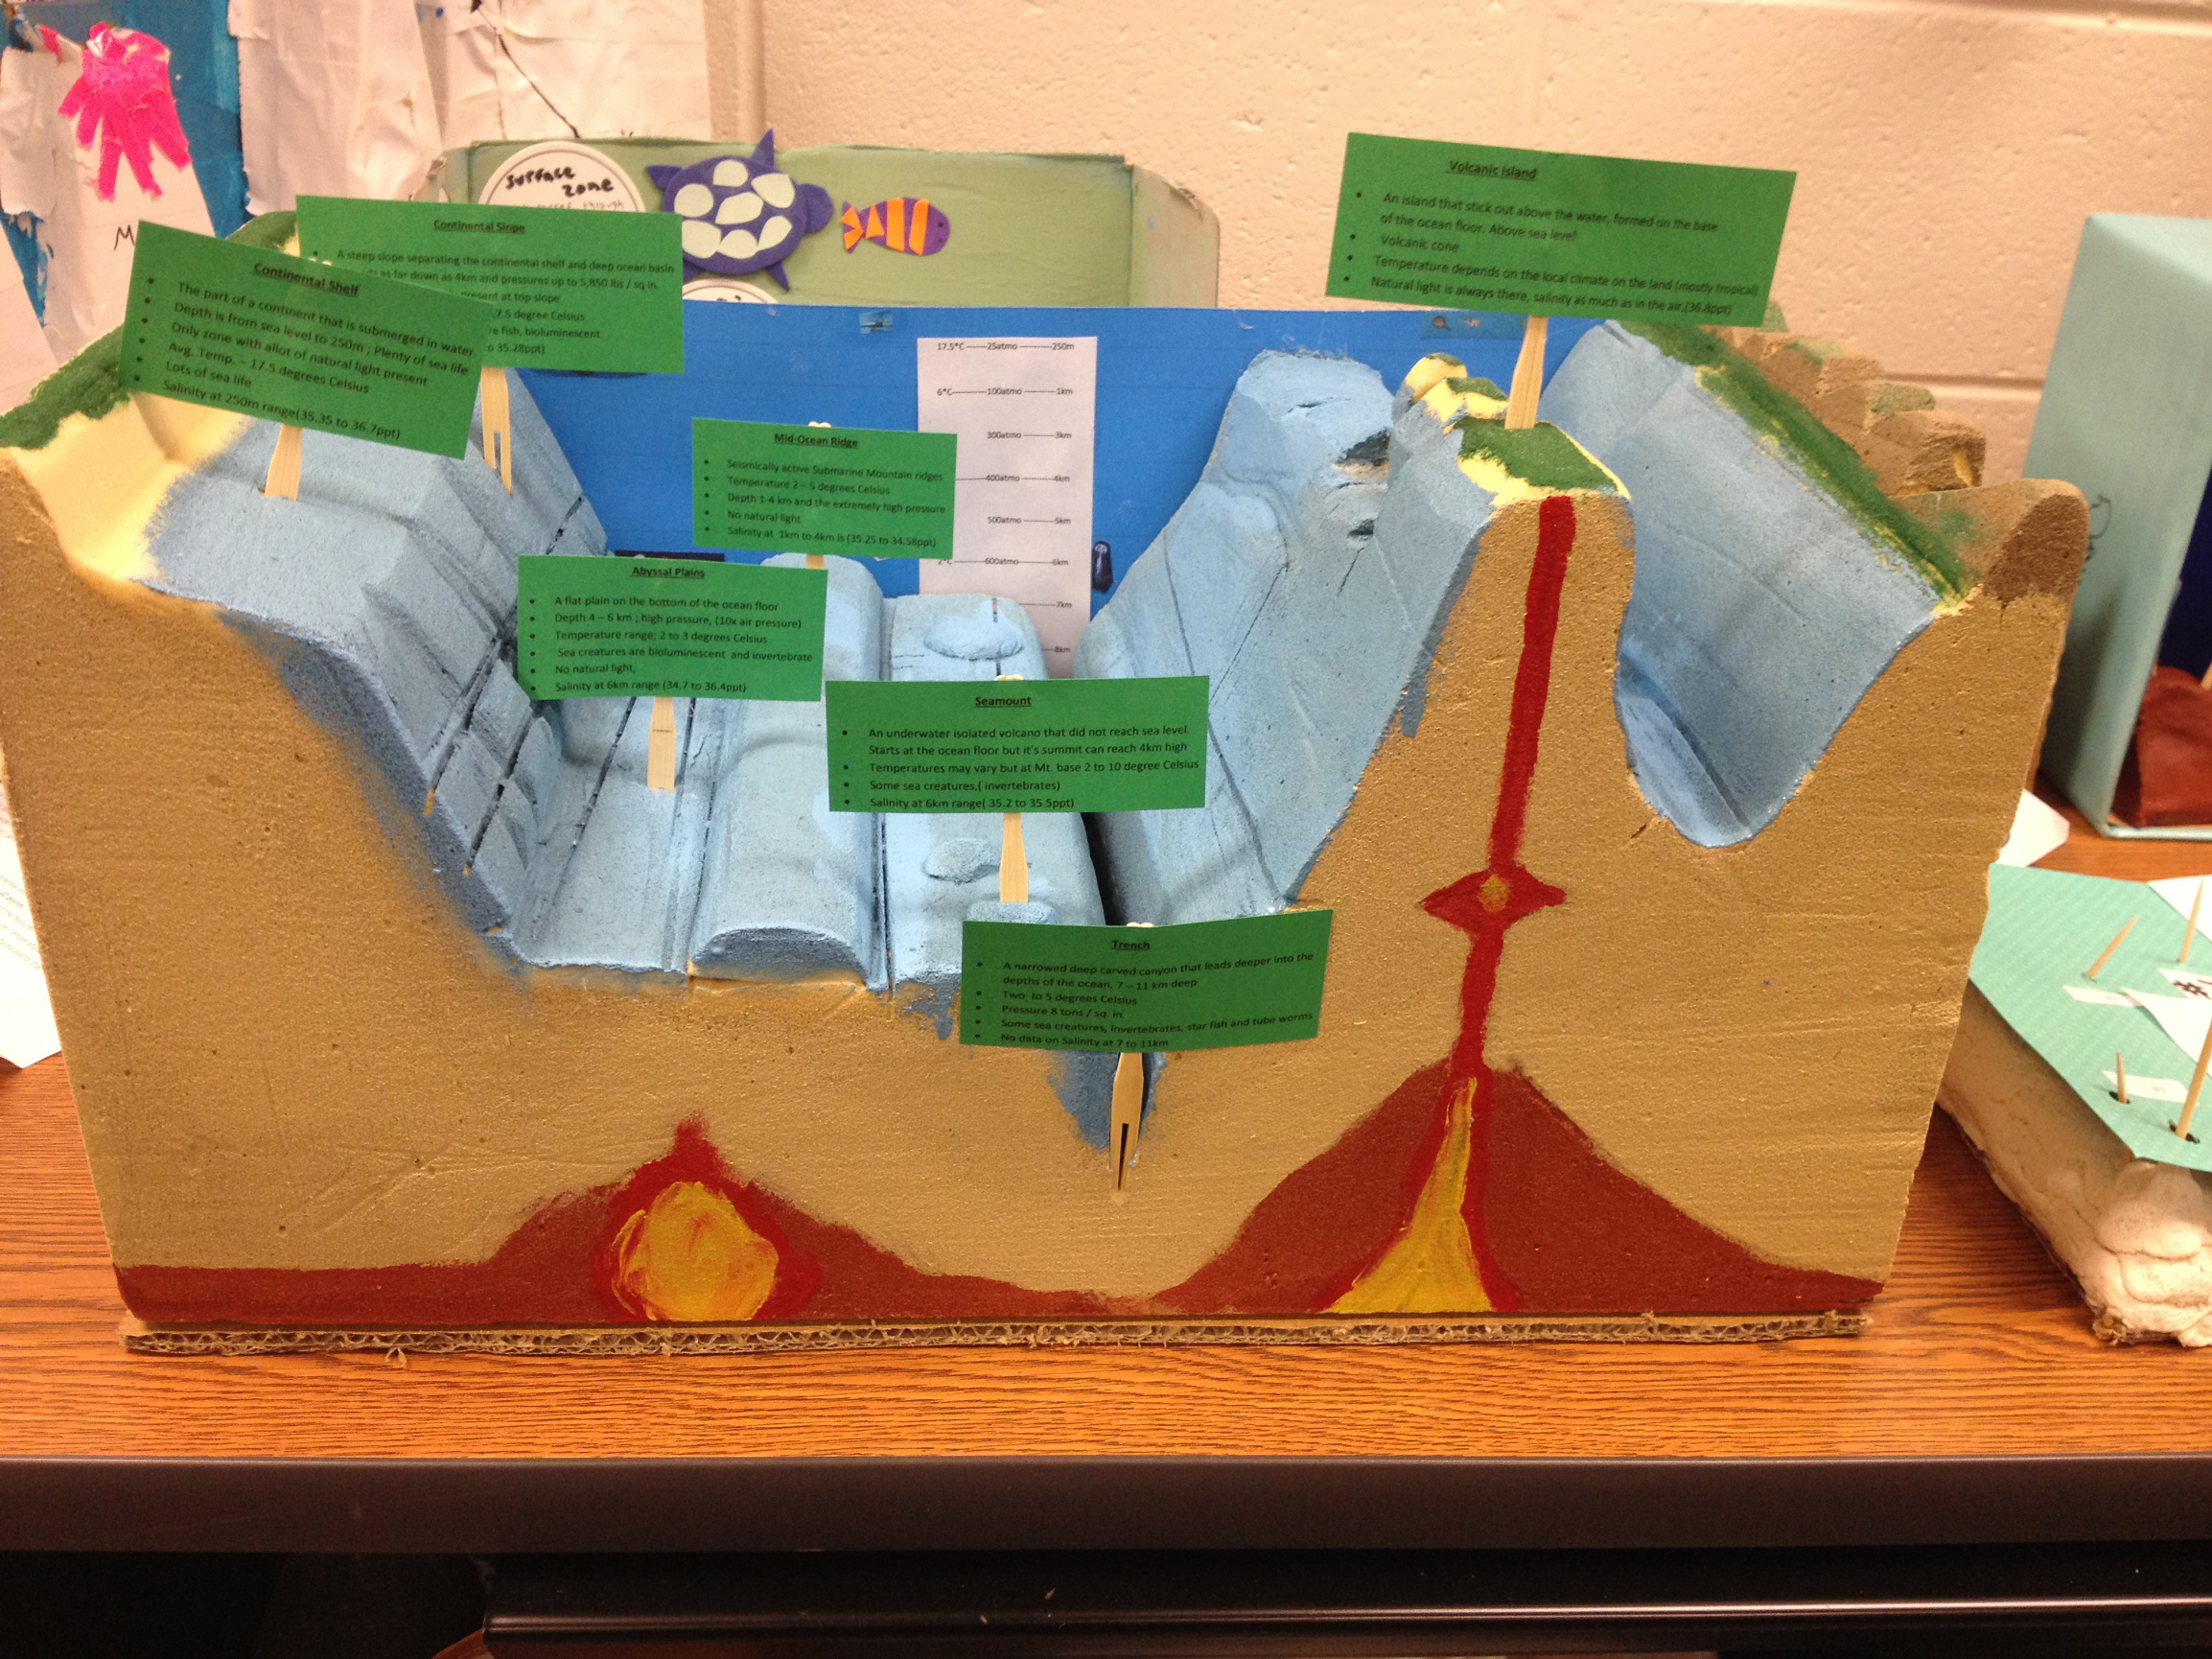 Ocean Floor School Projects Models http://mrswilsonscience.com/stretchingforward/ocean-floor-models/